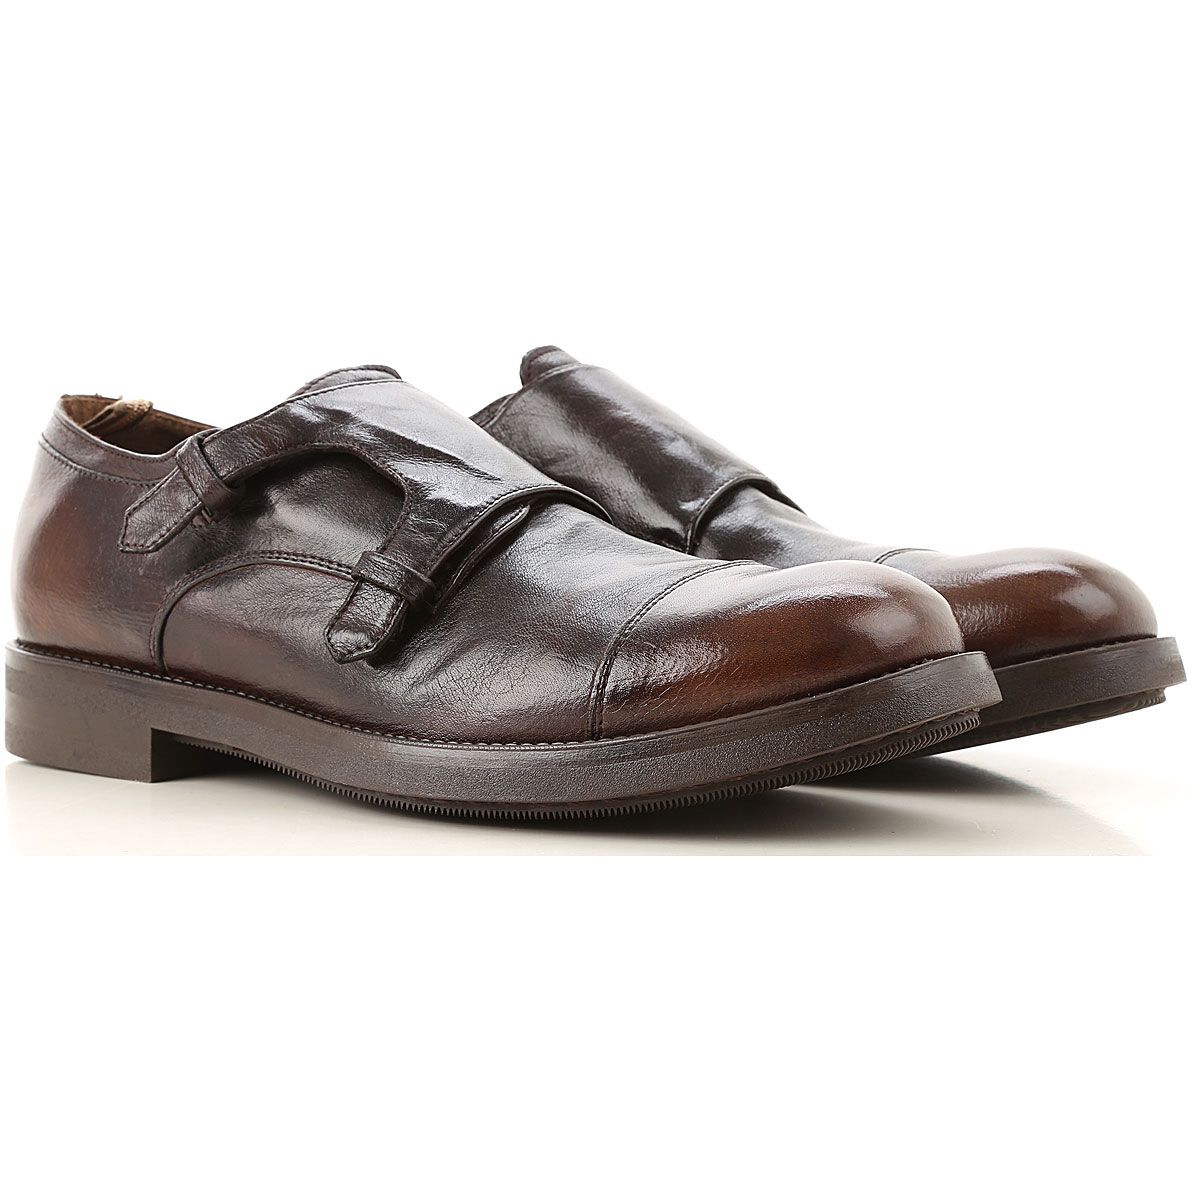 Officine Creative Monk Strap Shoes for Men, Shaded Dark Brown, Leather, 2019, 10.25 8